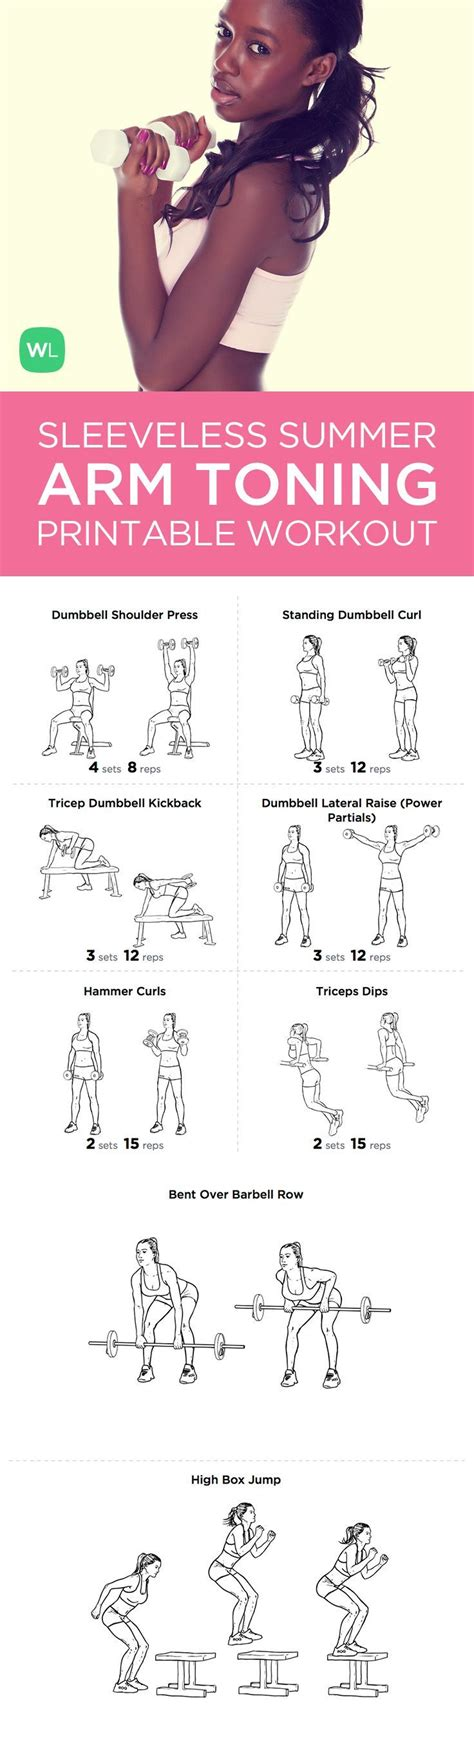 printable workout plan to lose weight and tone up top 8 arm toner workouts for women printable workouts